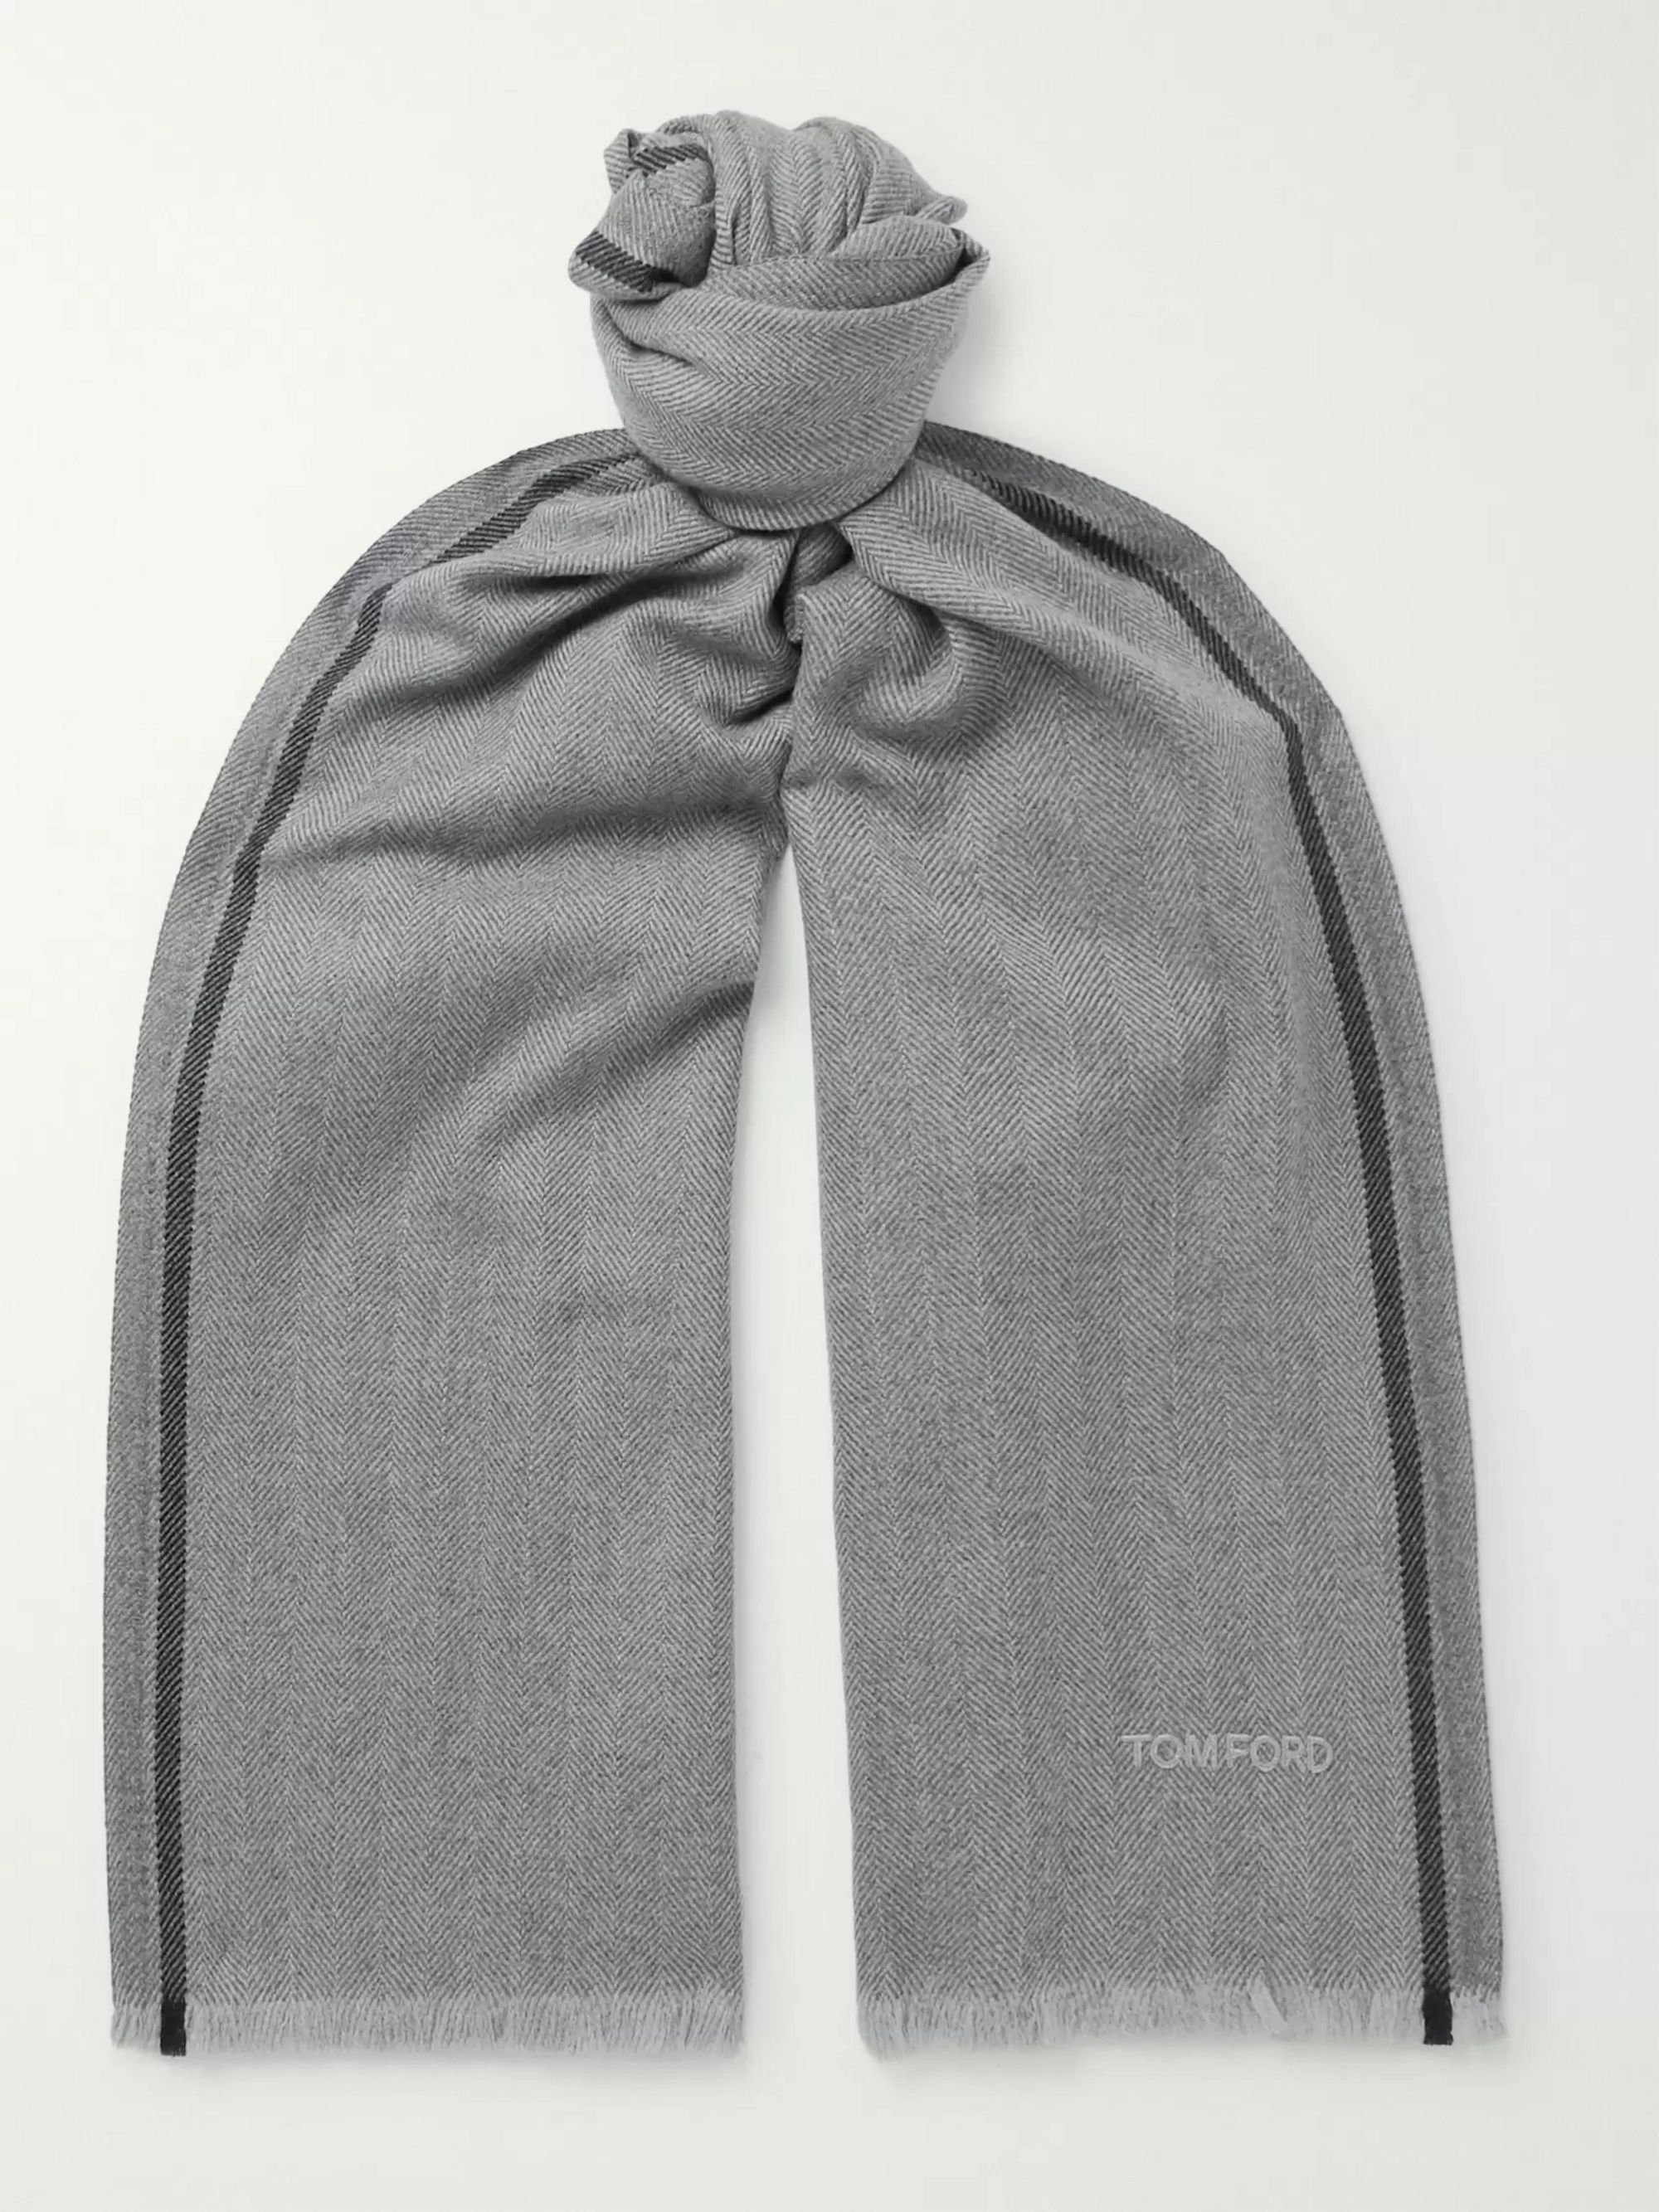 TOM FORD Fringed Logo-Embroidered Herringbone Brushed-Wool Scarf